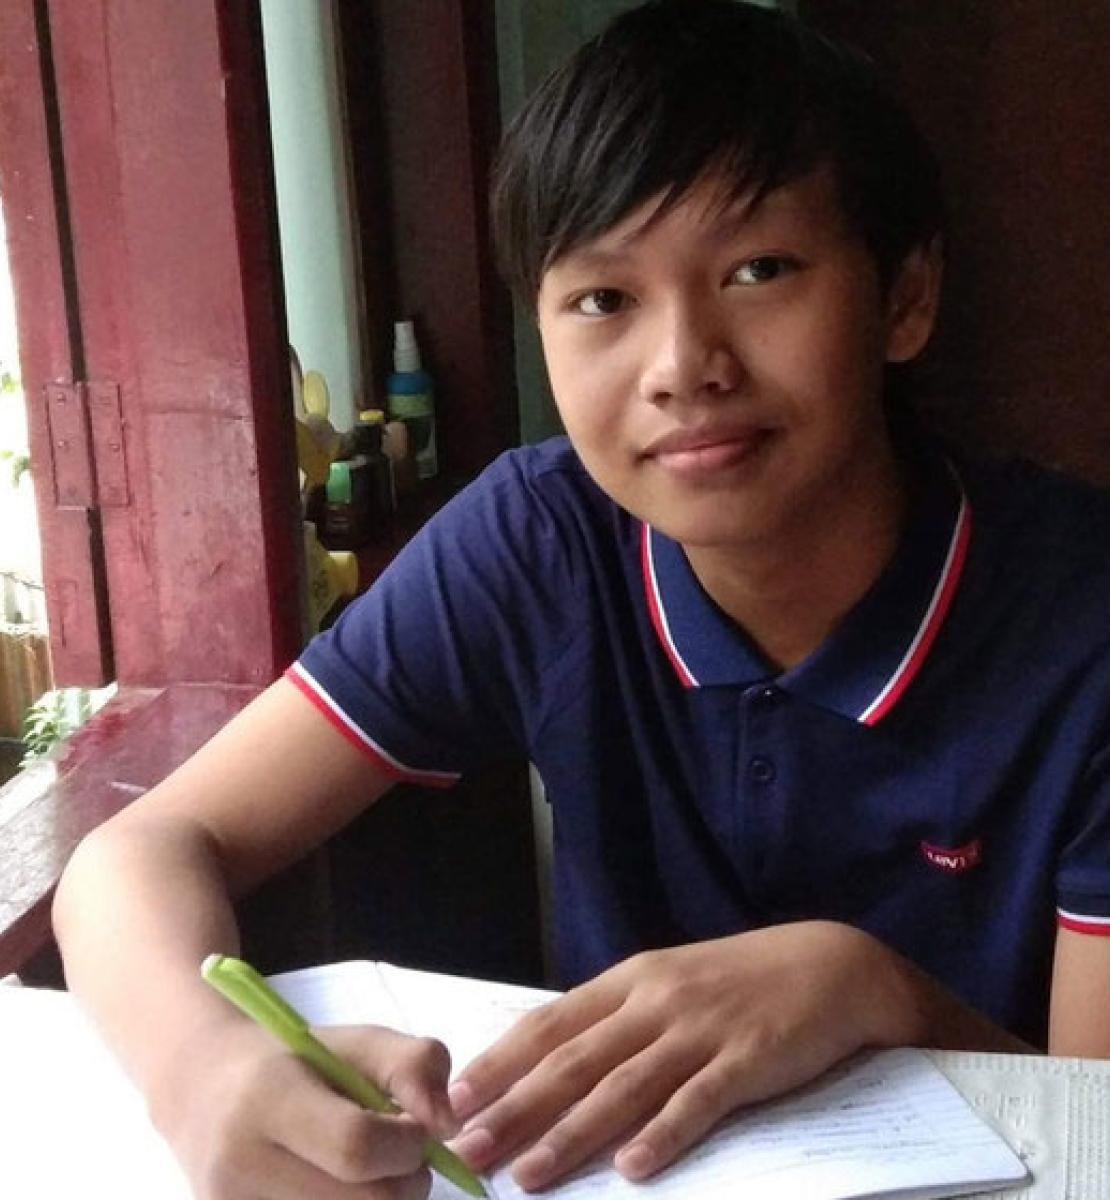 Thaw Lay, grade 10, from Yangon, Myanmar is shown studying at his home.